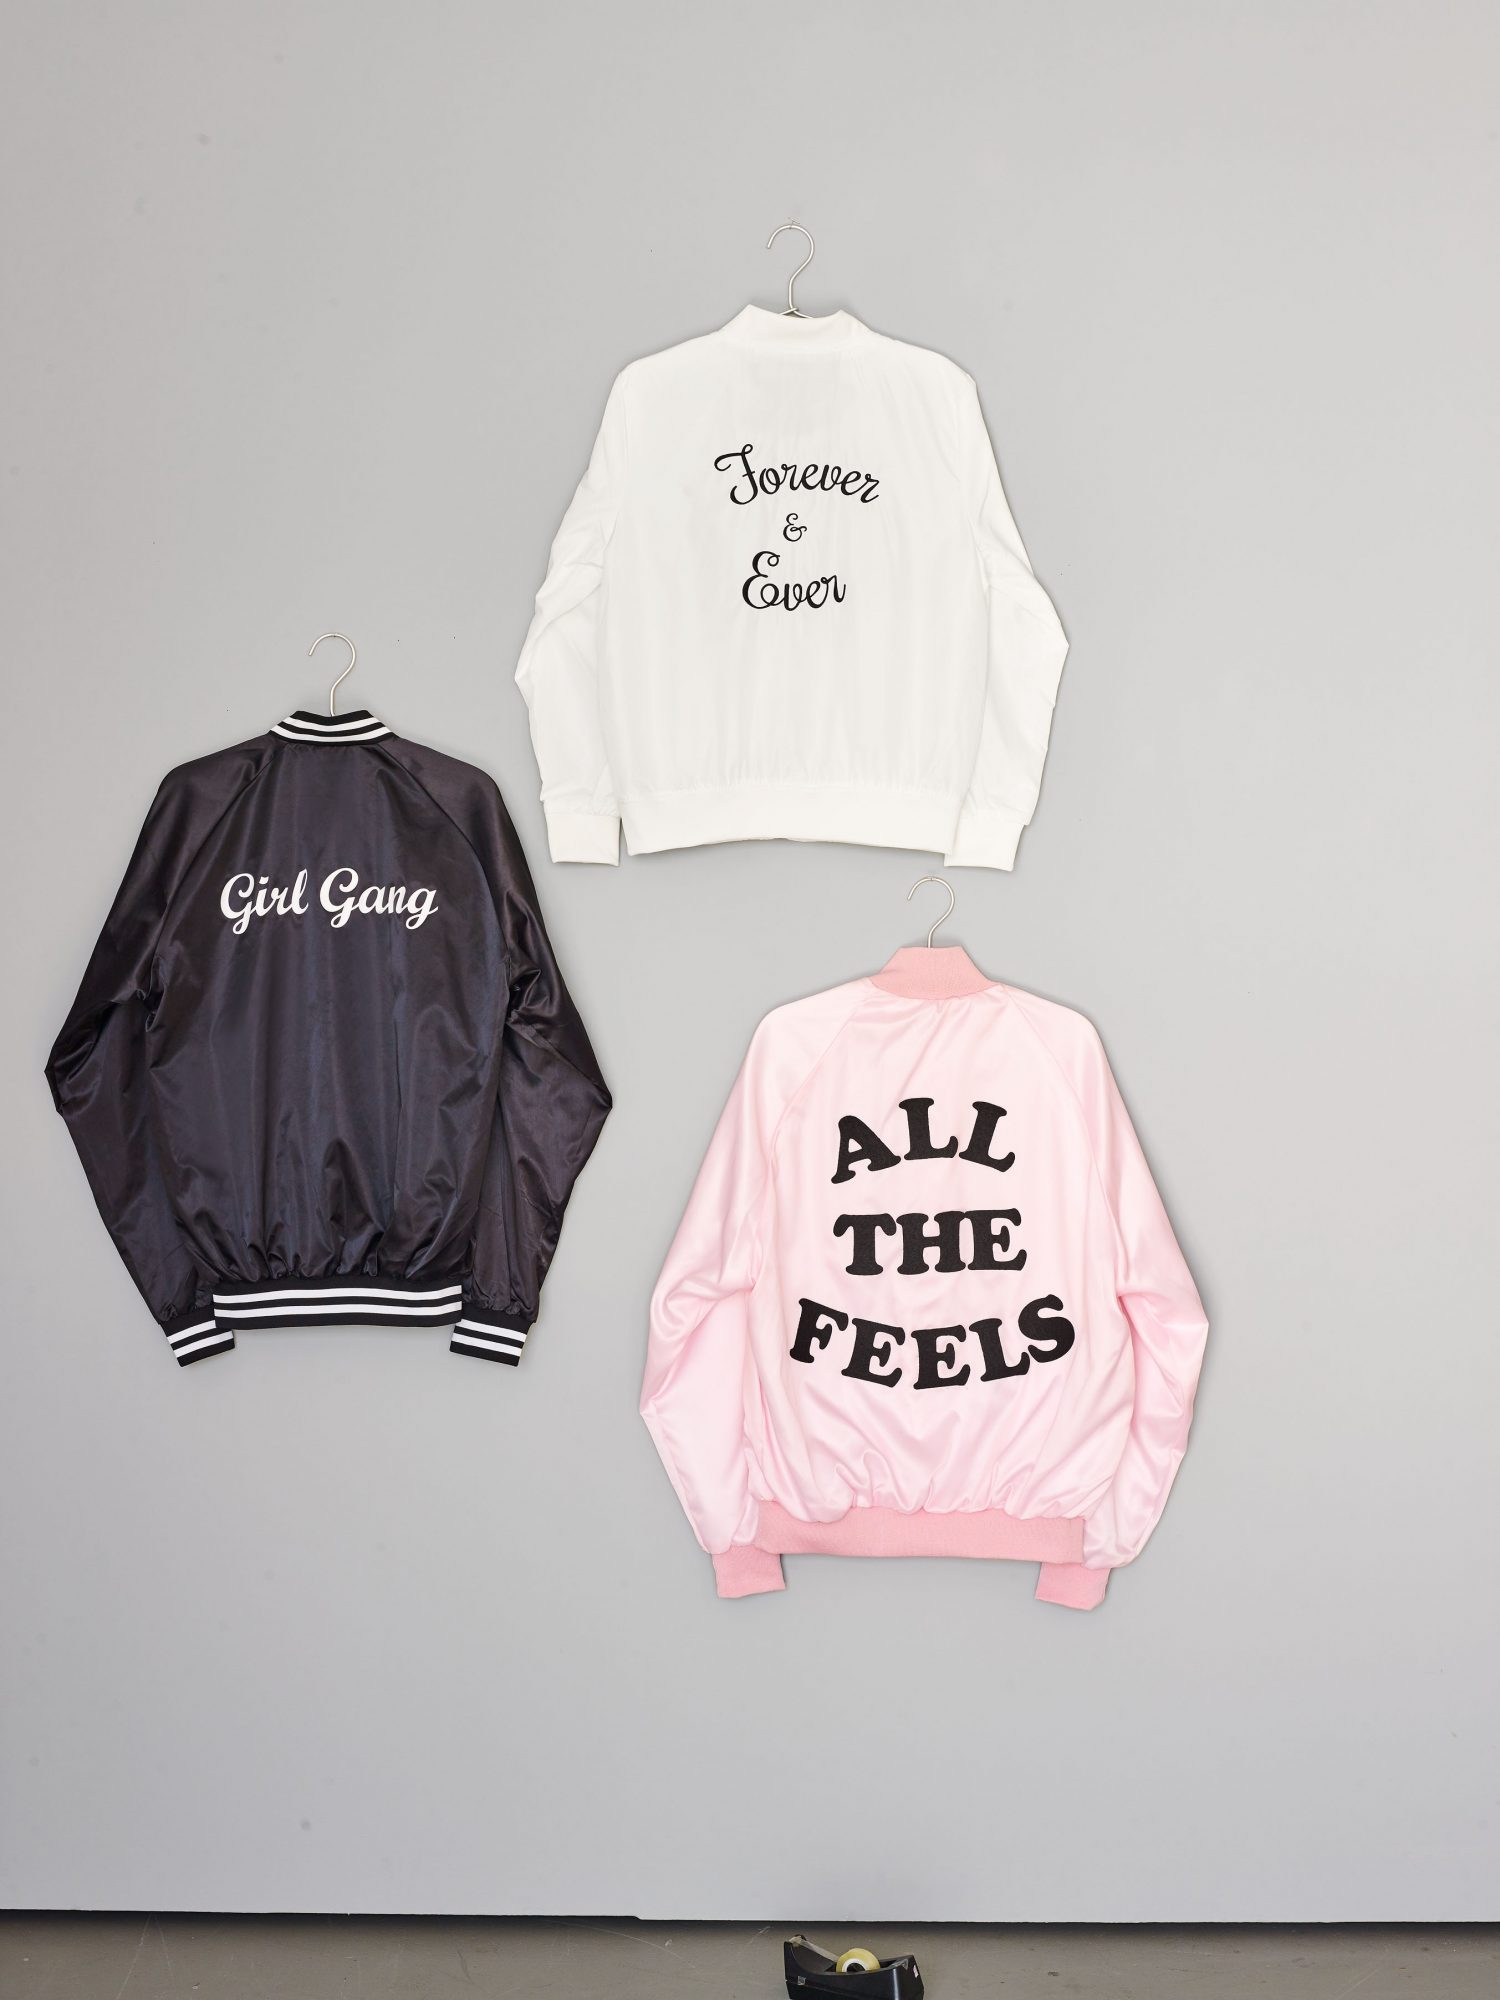 These chic jackets look both vintage and modern, and will ensure that outerwear doesn't ruin your crew's going-out outfits. Buy ones with words on them already, or customize them yourself using embroidery,heat-transfer printing, or affixable letters.